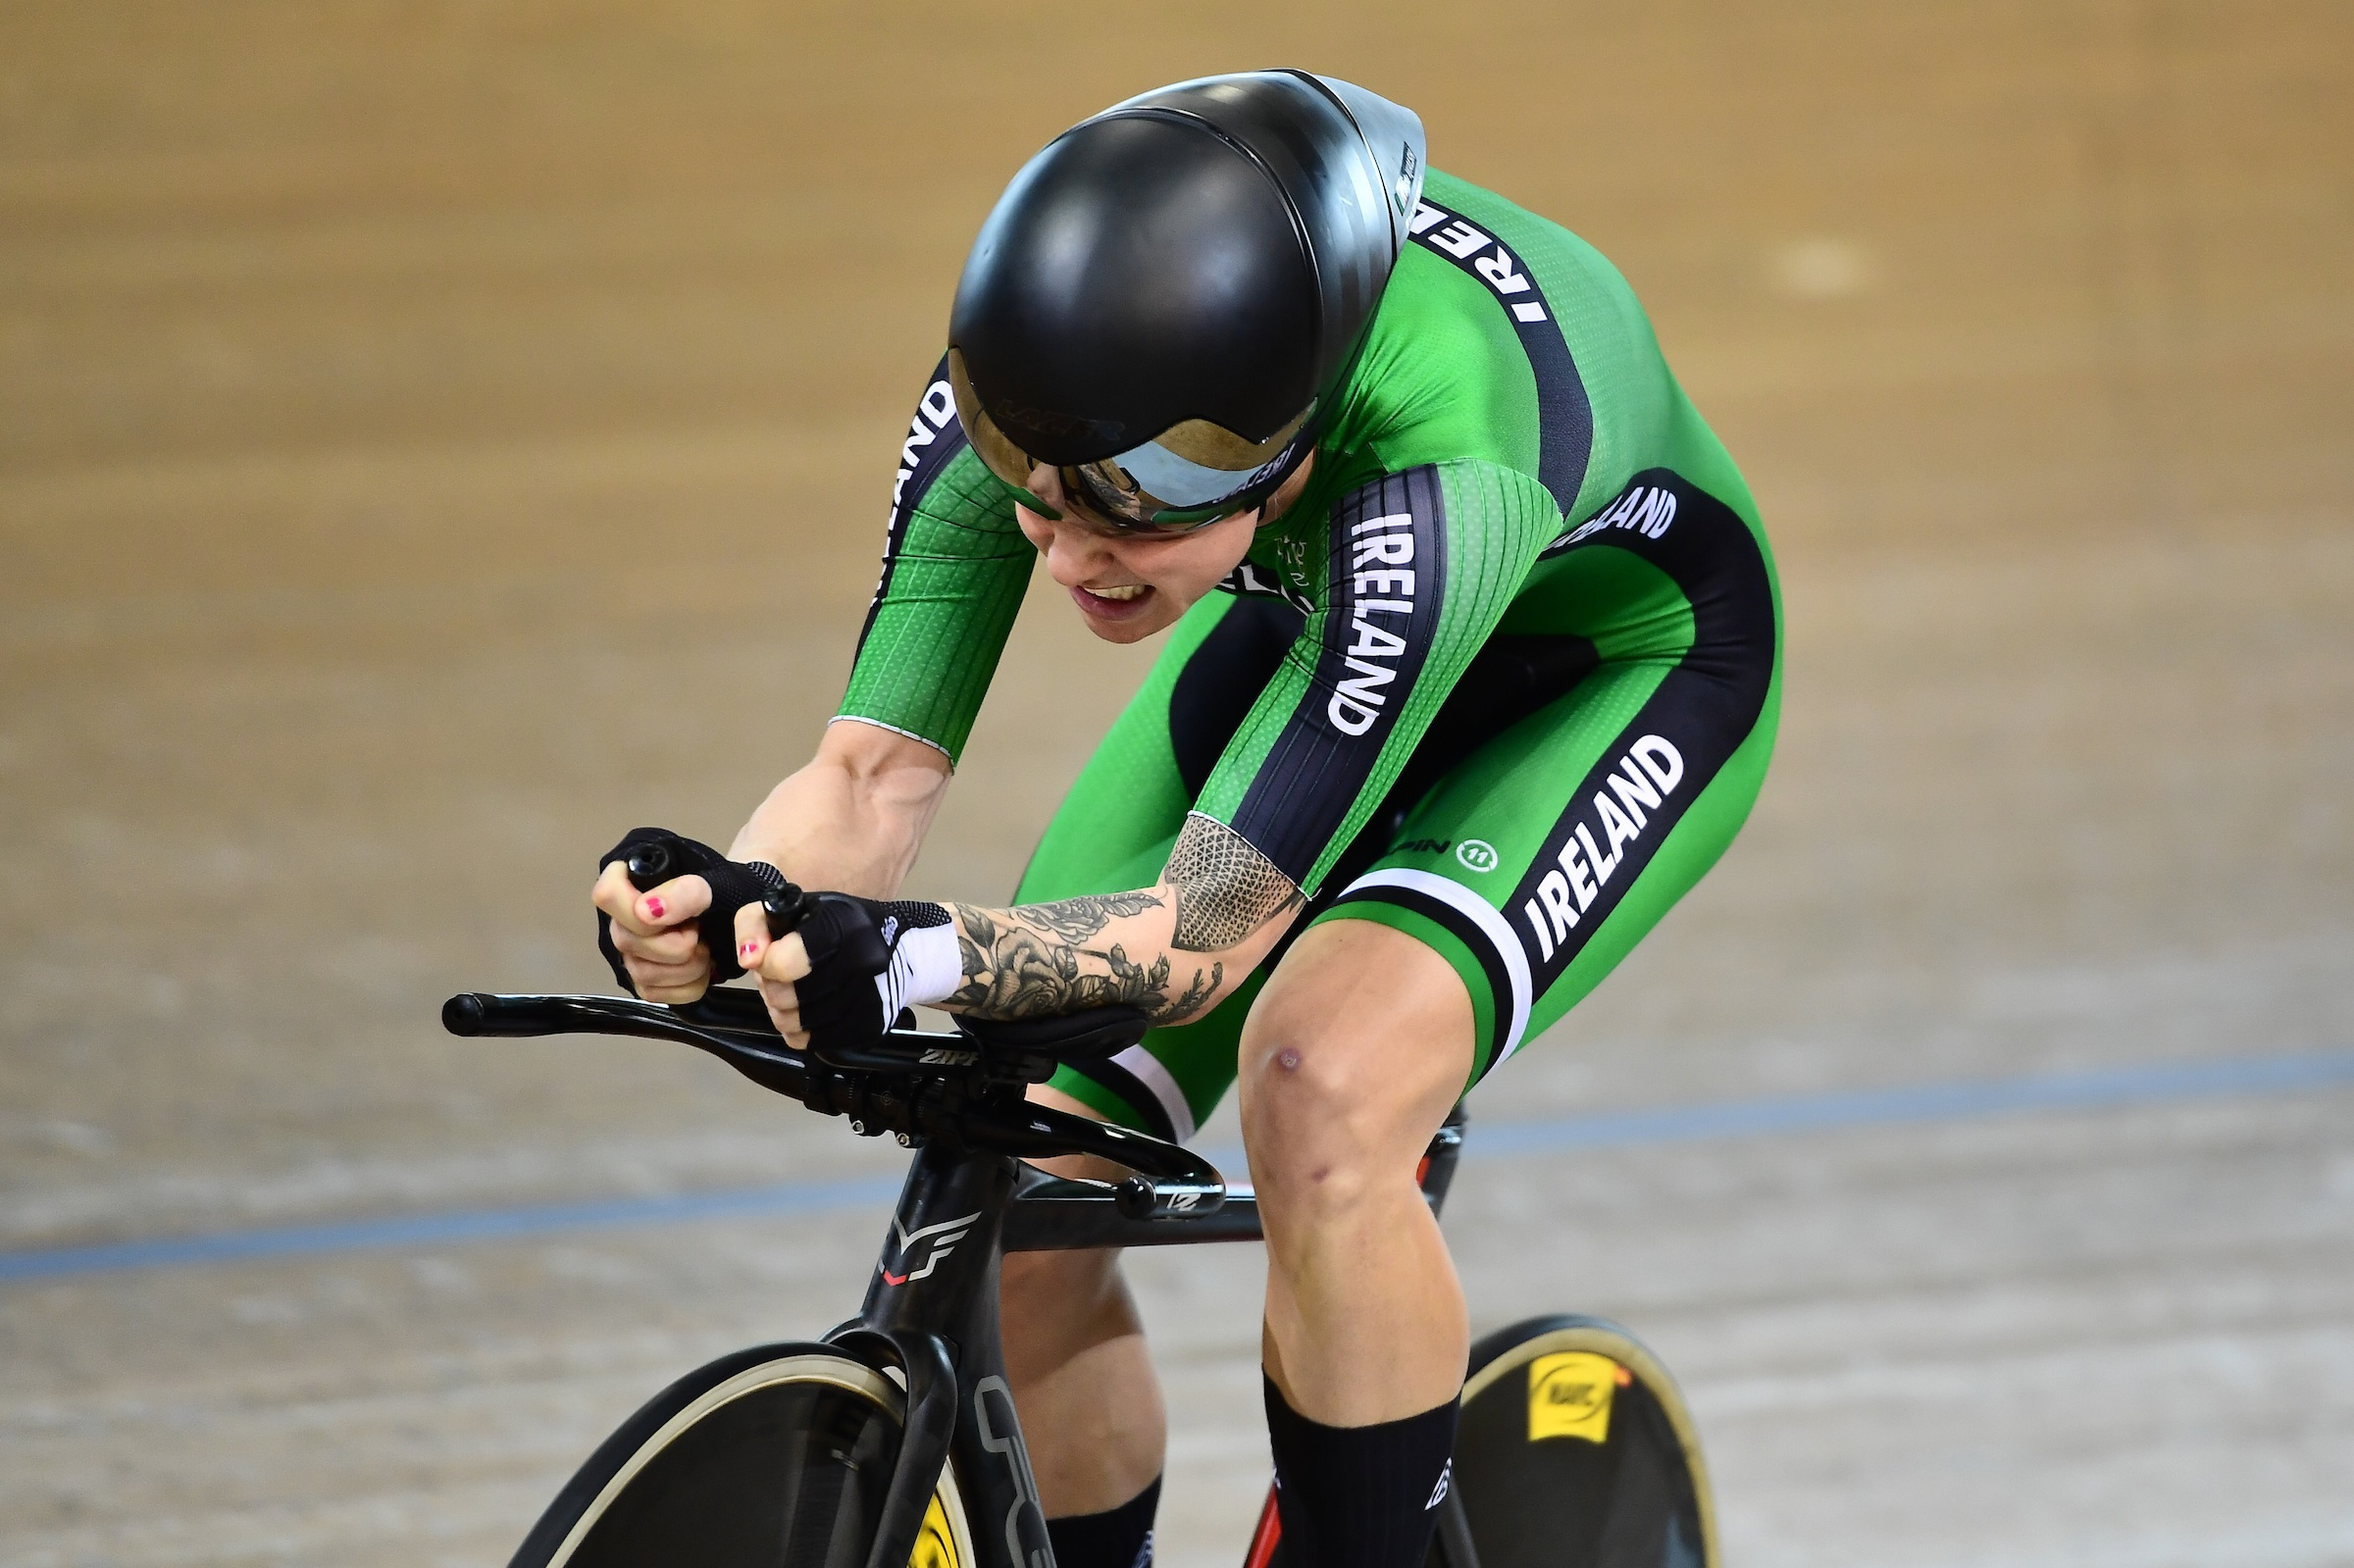 35d594c2b Orla Walsh looks very good at Euro Track Cycling Champs - Sticky Bottle